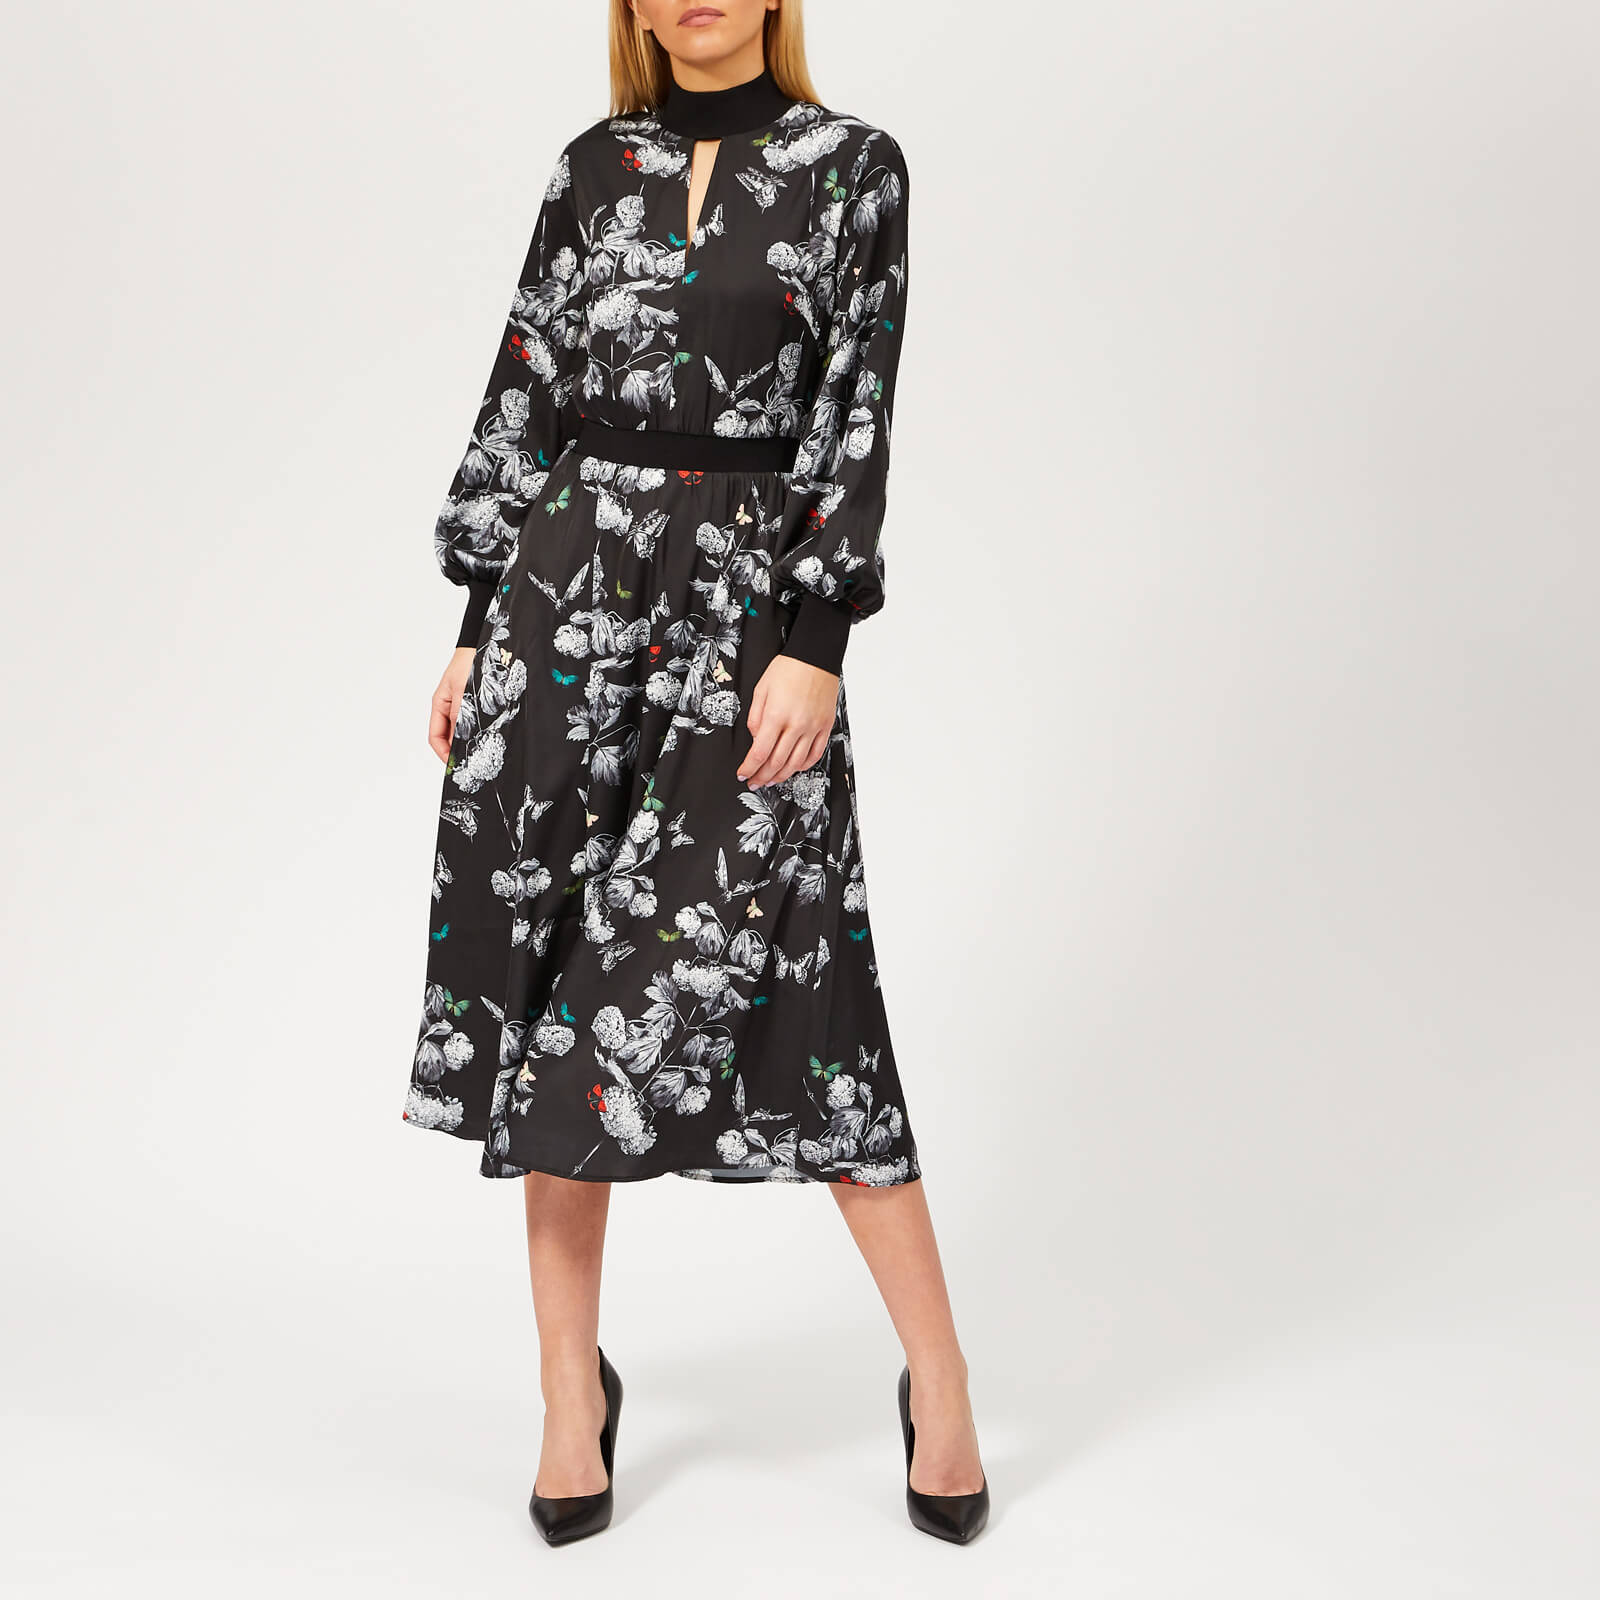 dfc33549506480 Ted Baker Women's Eynah Narrnia Midi Dress - Black Womens Clothing |  TheHut.com